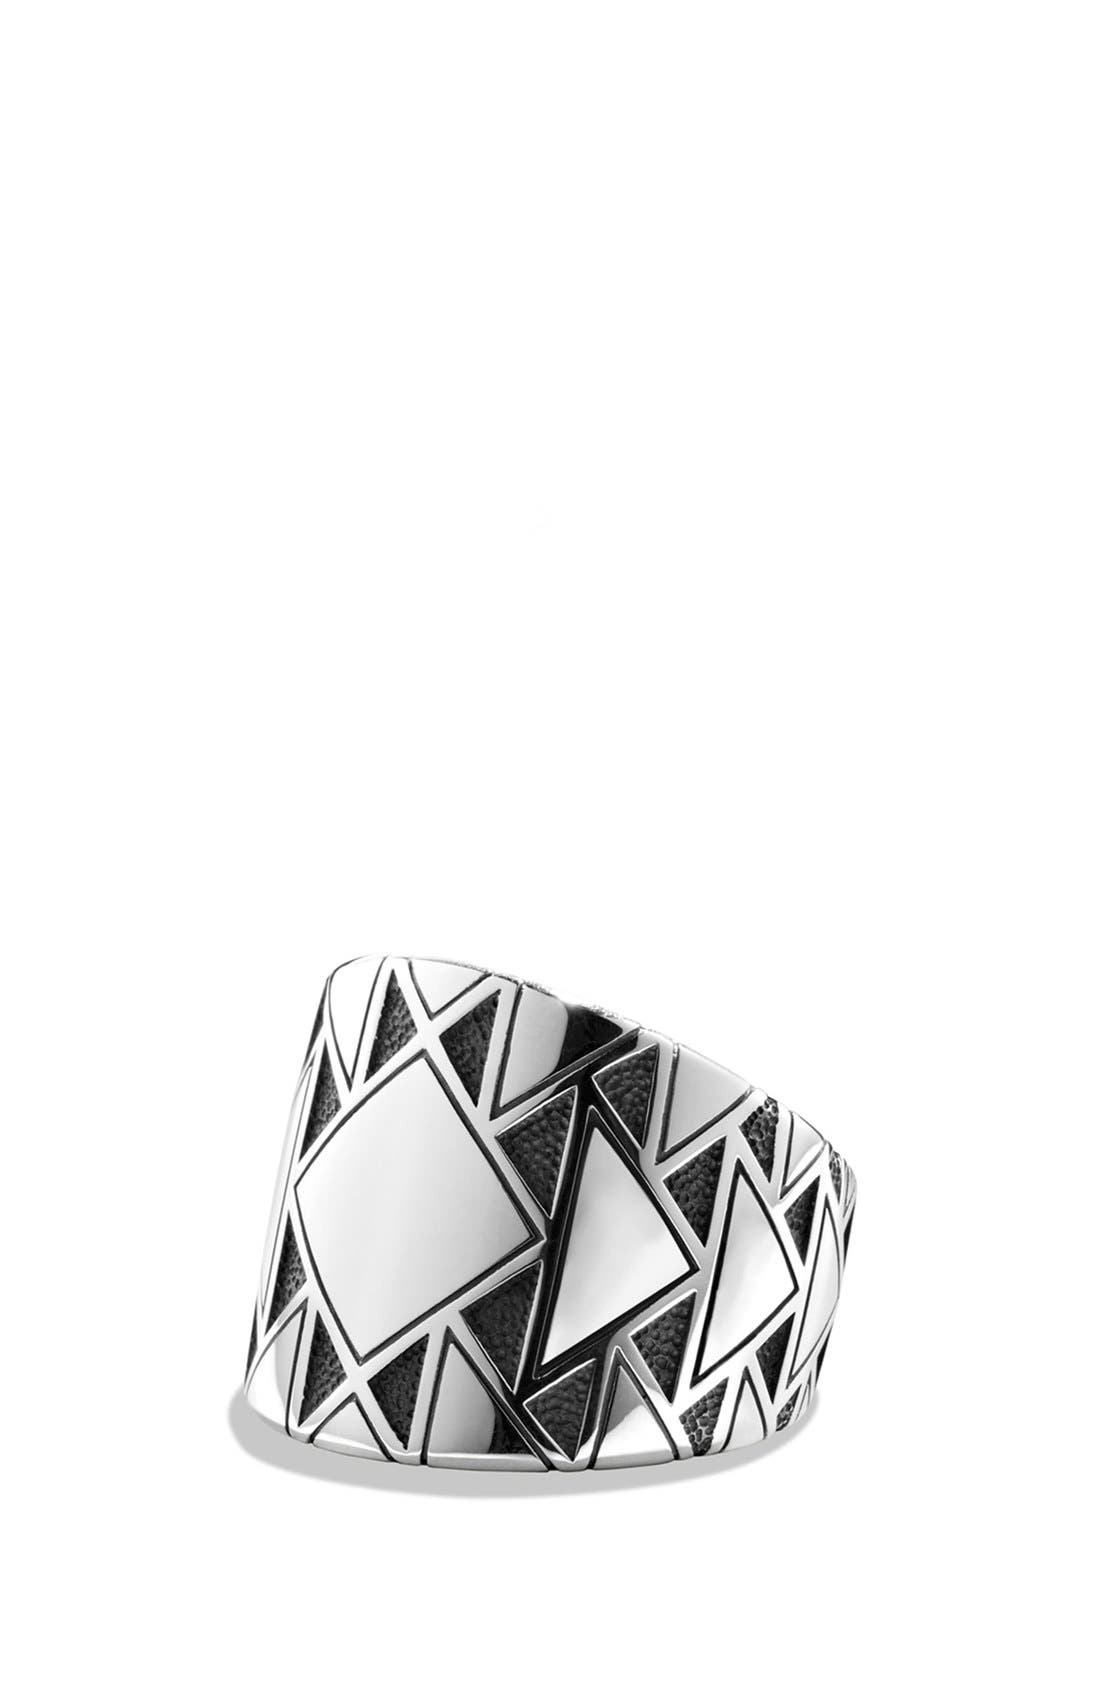 Southwest Signet Ring with Black Diamonds,                         Main,                         color, 040